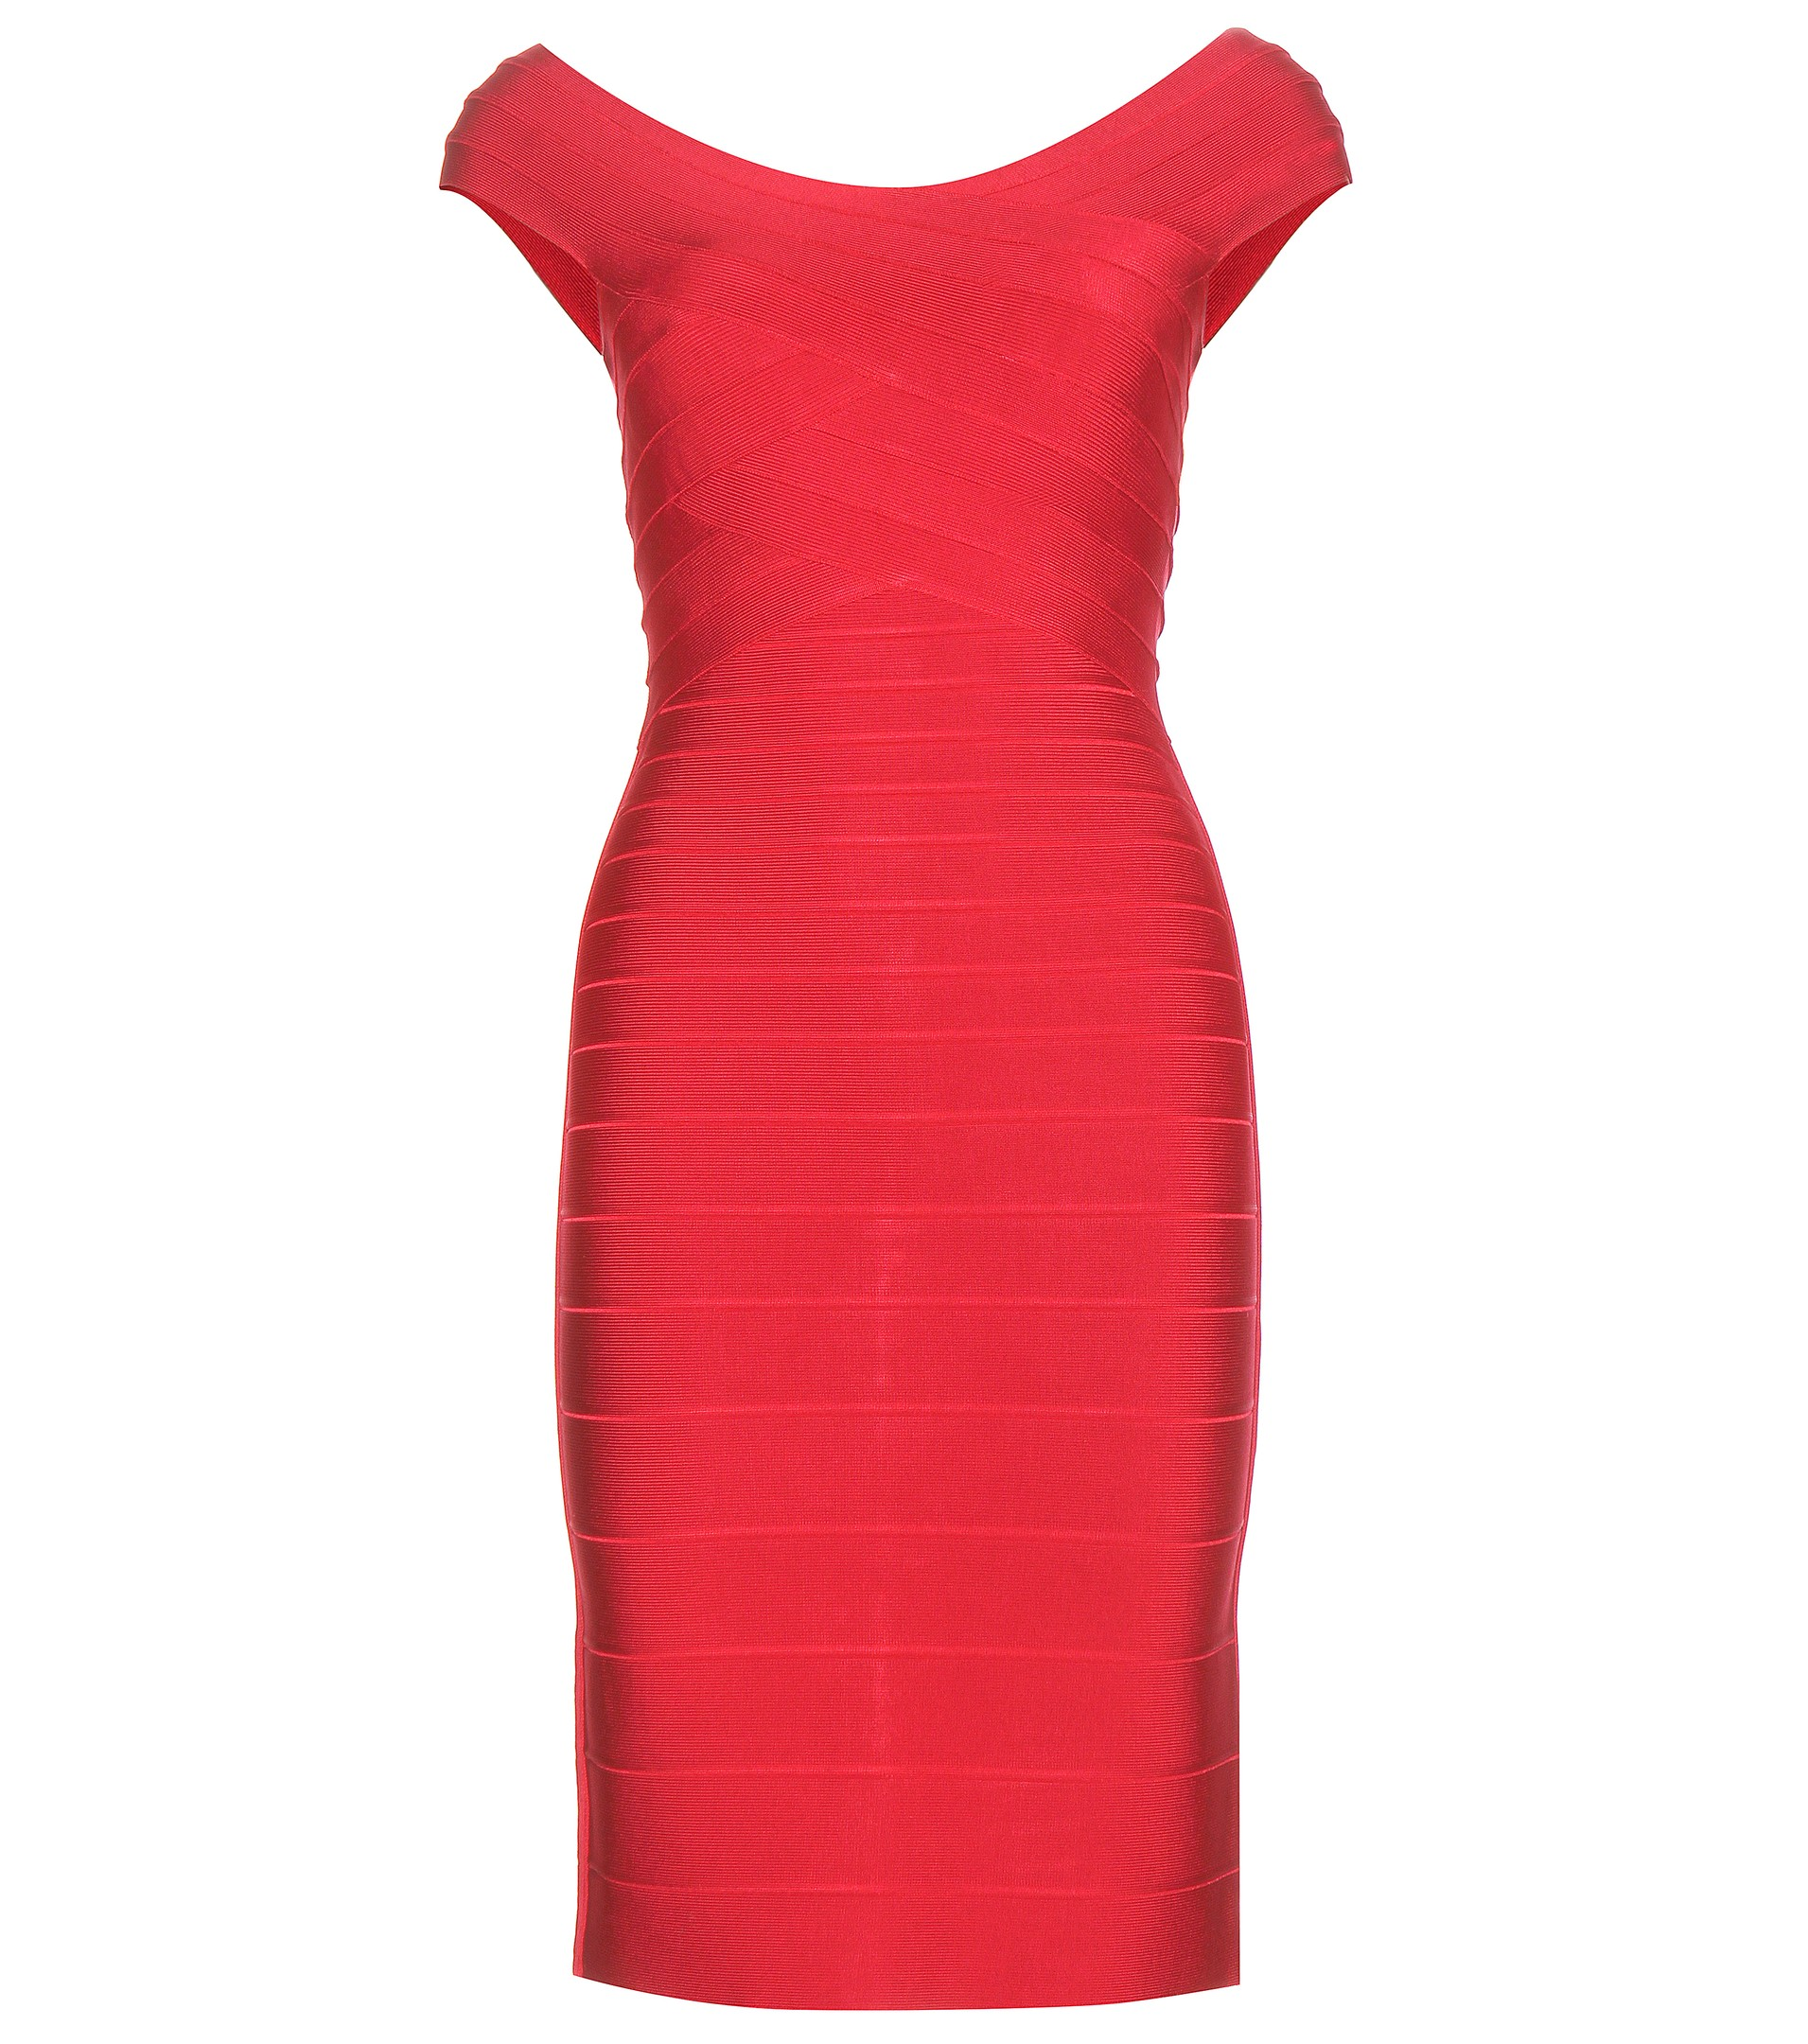 Herve Leger figure hugging lipstick red Tayler bandage dress 2047 dollars